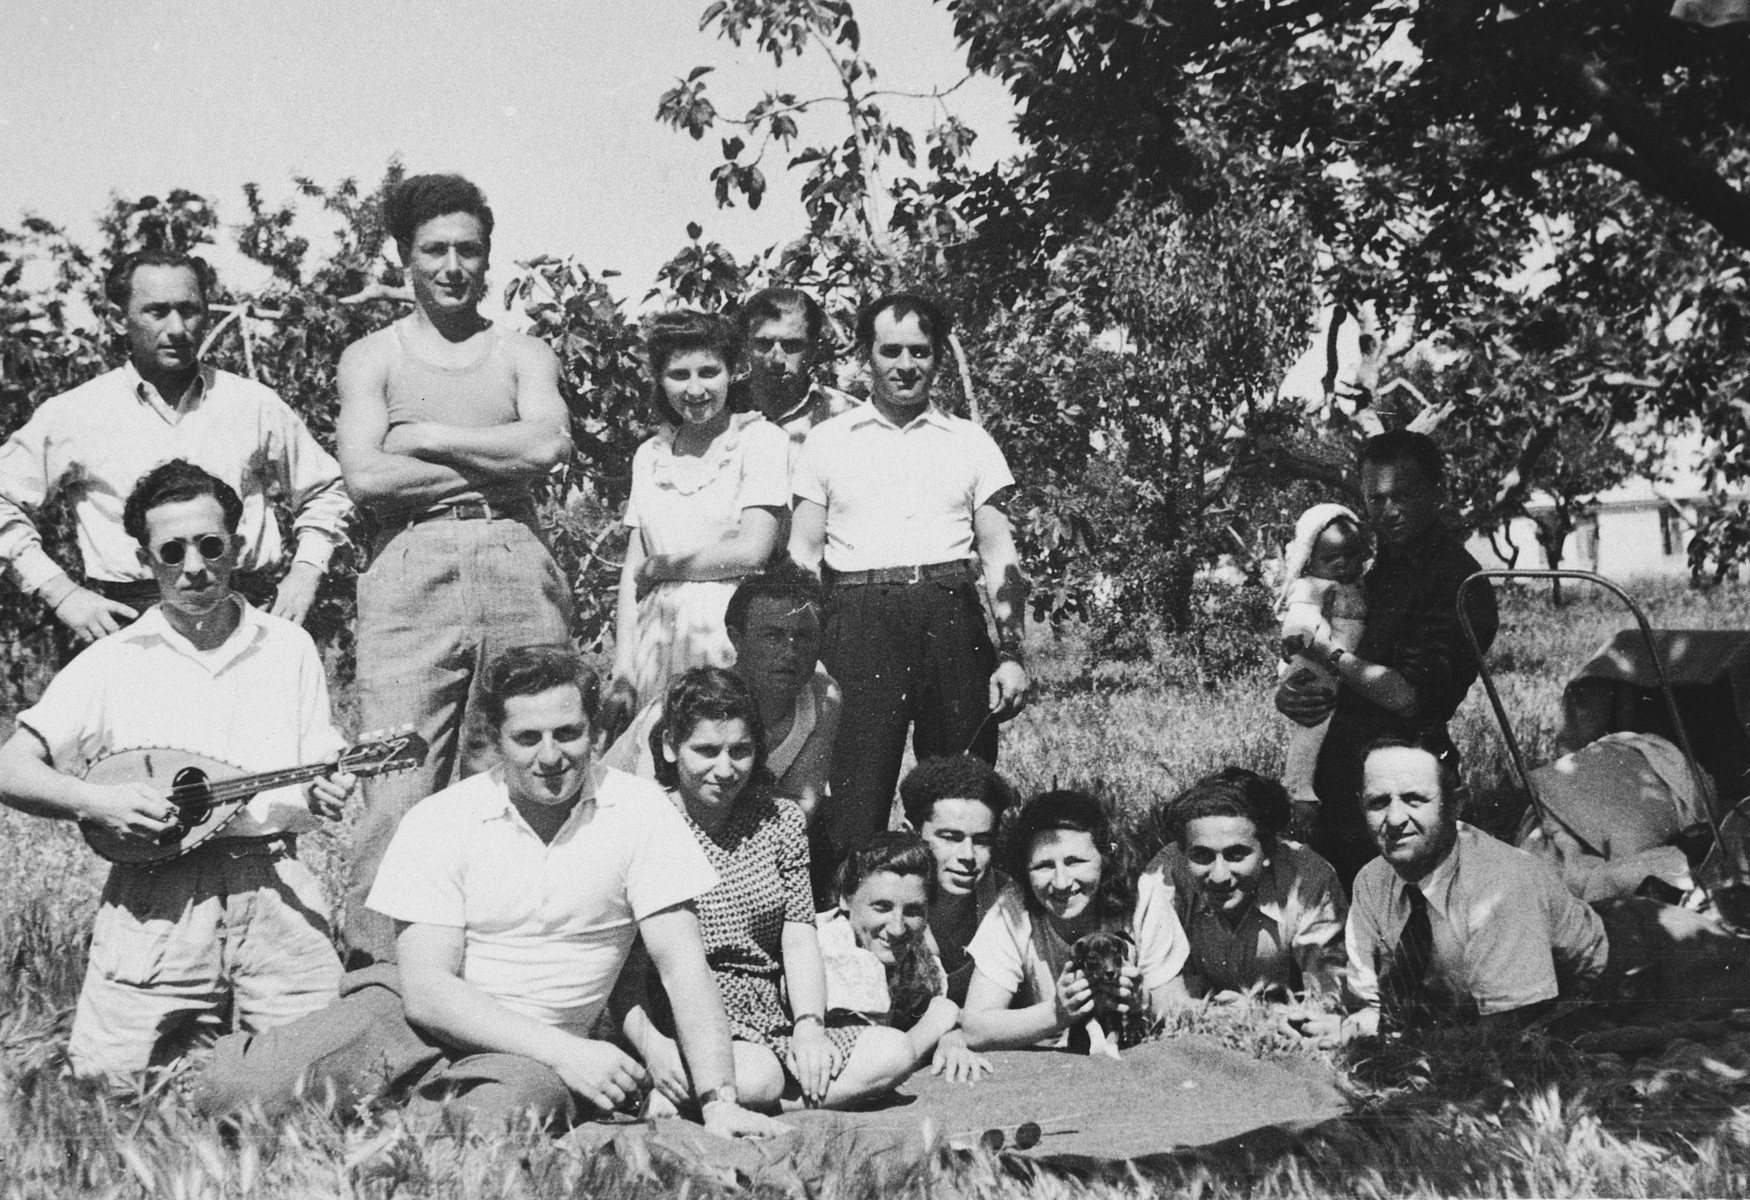 Jewish youth pose for a group portrait during an outdoor social gathering in the Bari displaced persons' camp.